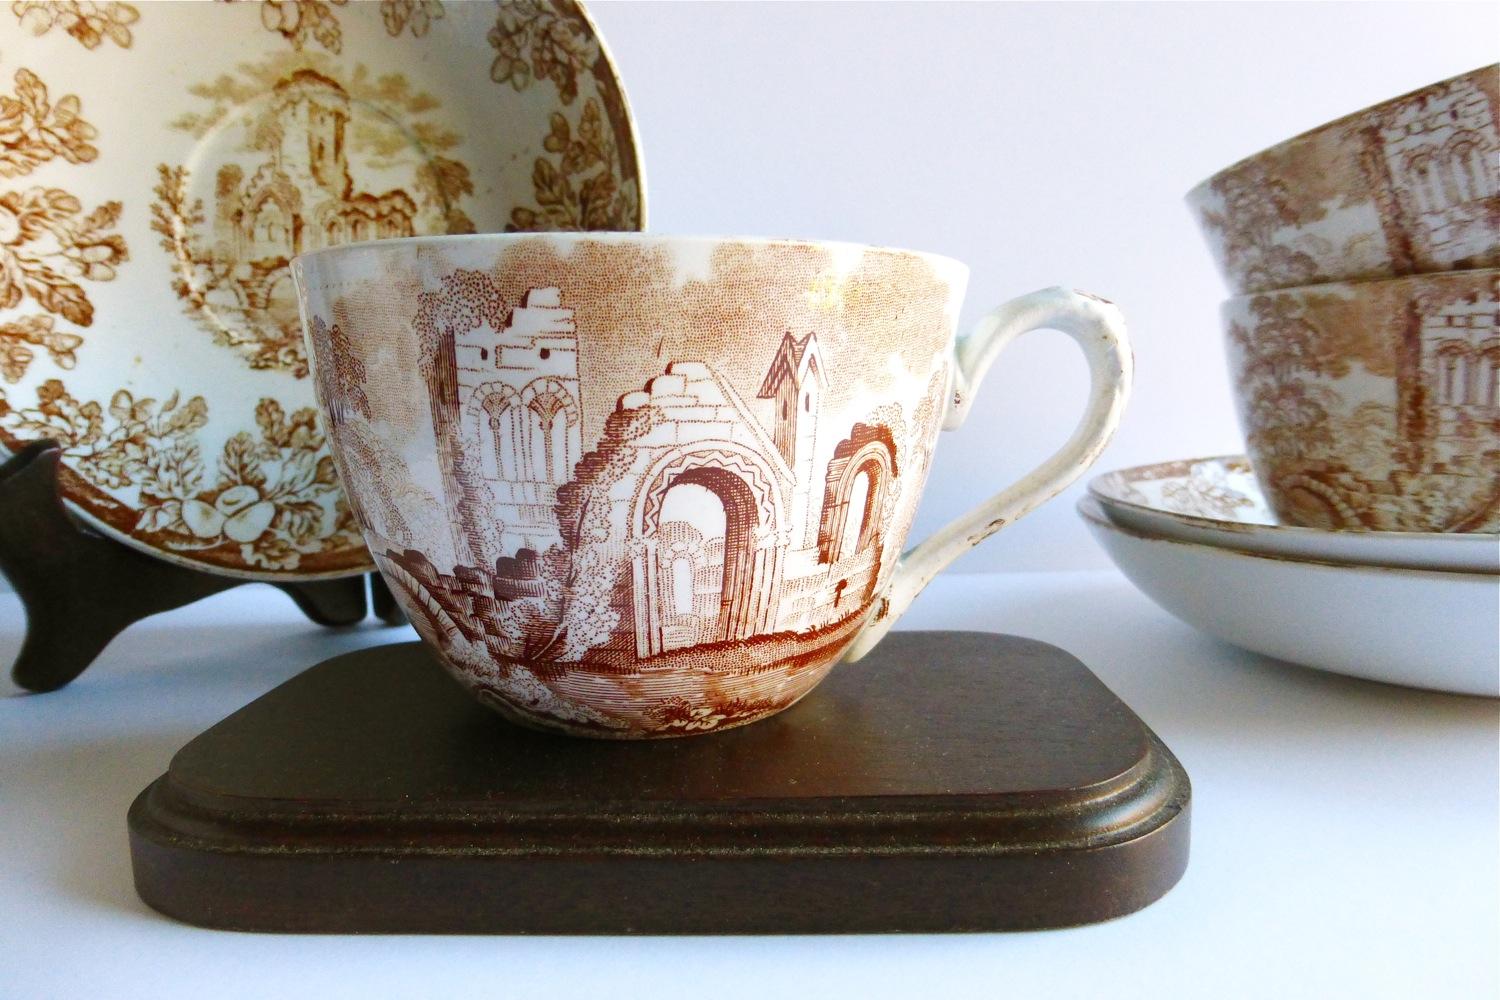 Etsy Vintage Tea Treasures, Vintage Tea Treasures on Etsy, vintage tea ware shop, antique tea ware shope, W.T. Copeland Spode Abbey Ruins teacups and saucers, antique W.T. Copeland Spode teacups and saucers, W.T. Copeland Spode Abby Ruins, W.T. Copeland Spode Ruins, W.T. Copeland Spode Melrose, decorative transferware teacups and saucers, W.T. Copeland Spode transferware, abbey teacup, acorn teacup, abbey and acorn teacup, brown transferware, antique transferware, autumn transferware, vintage tea party